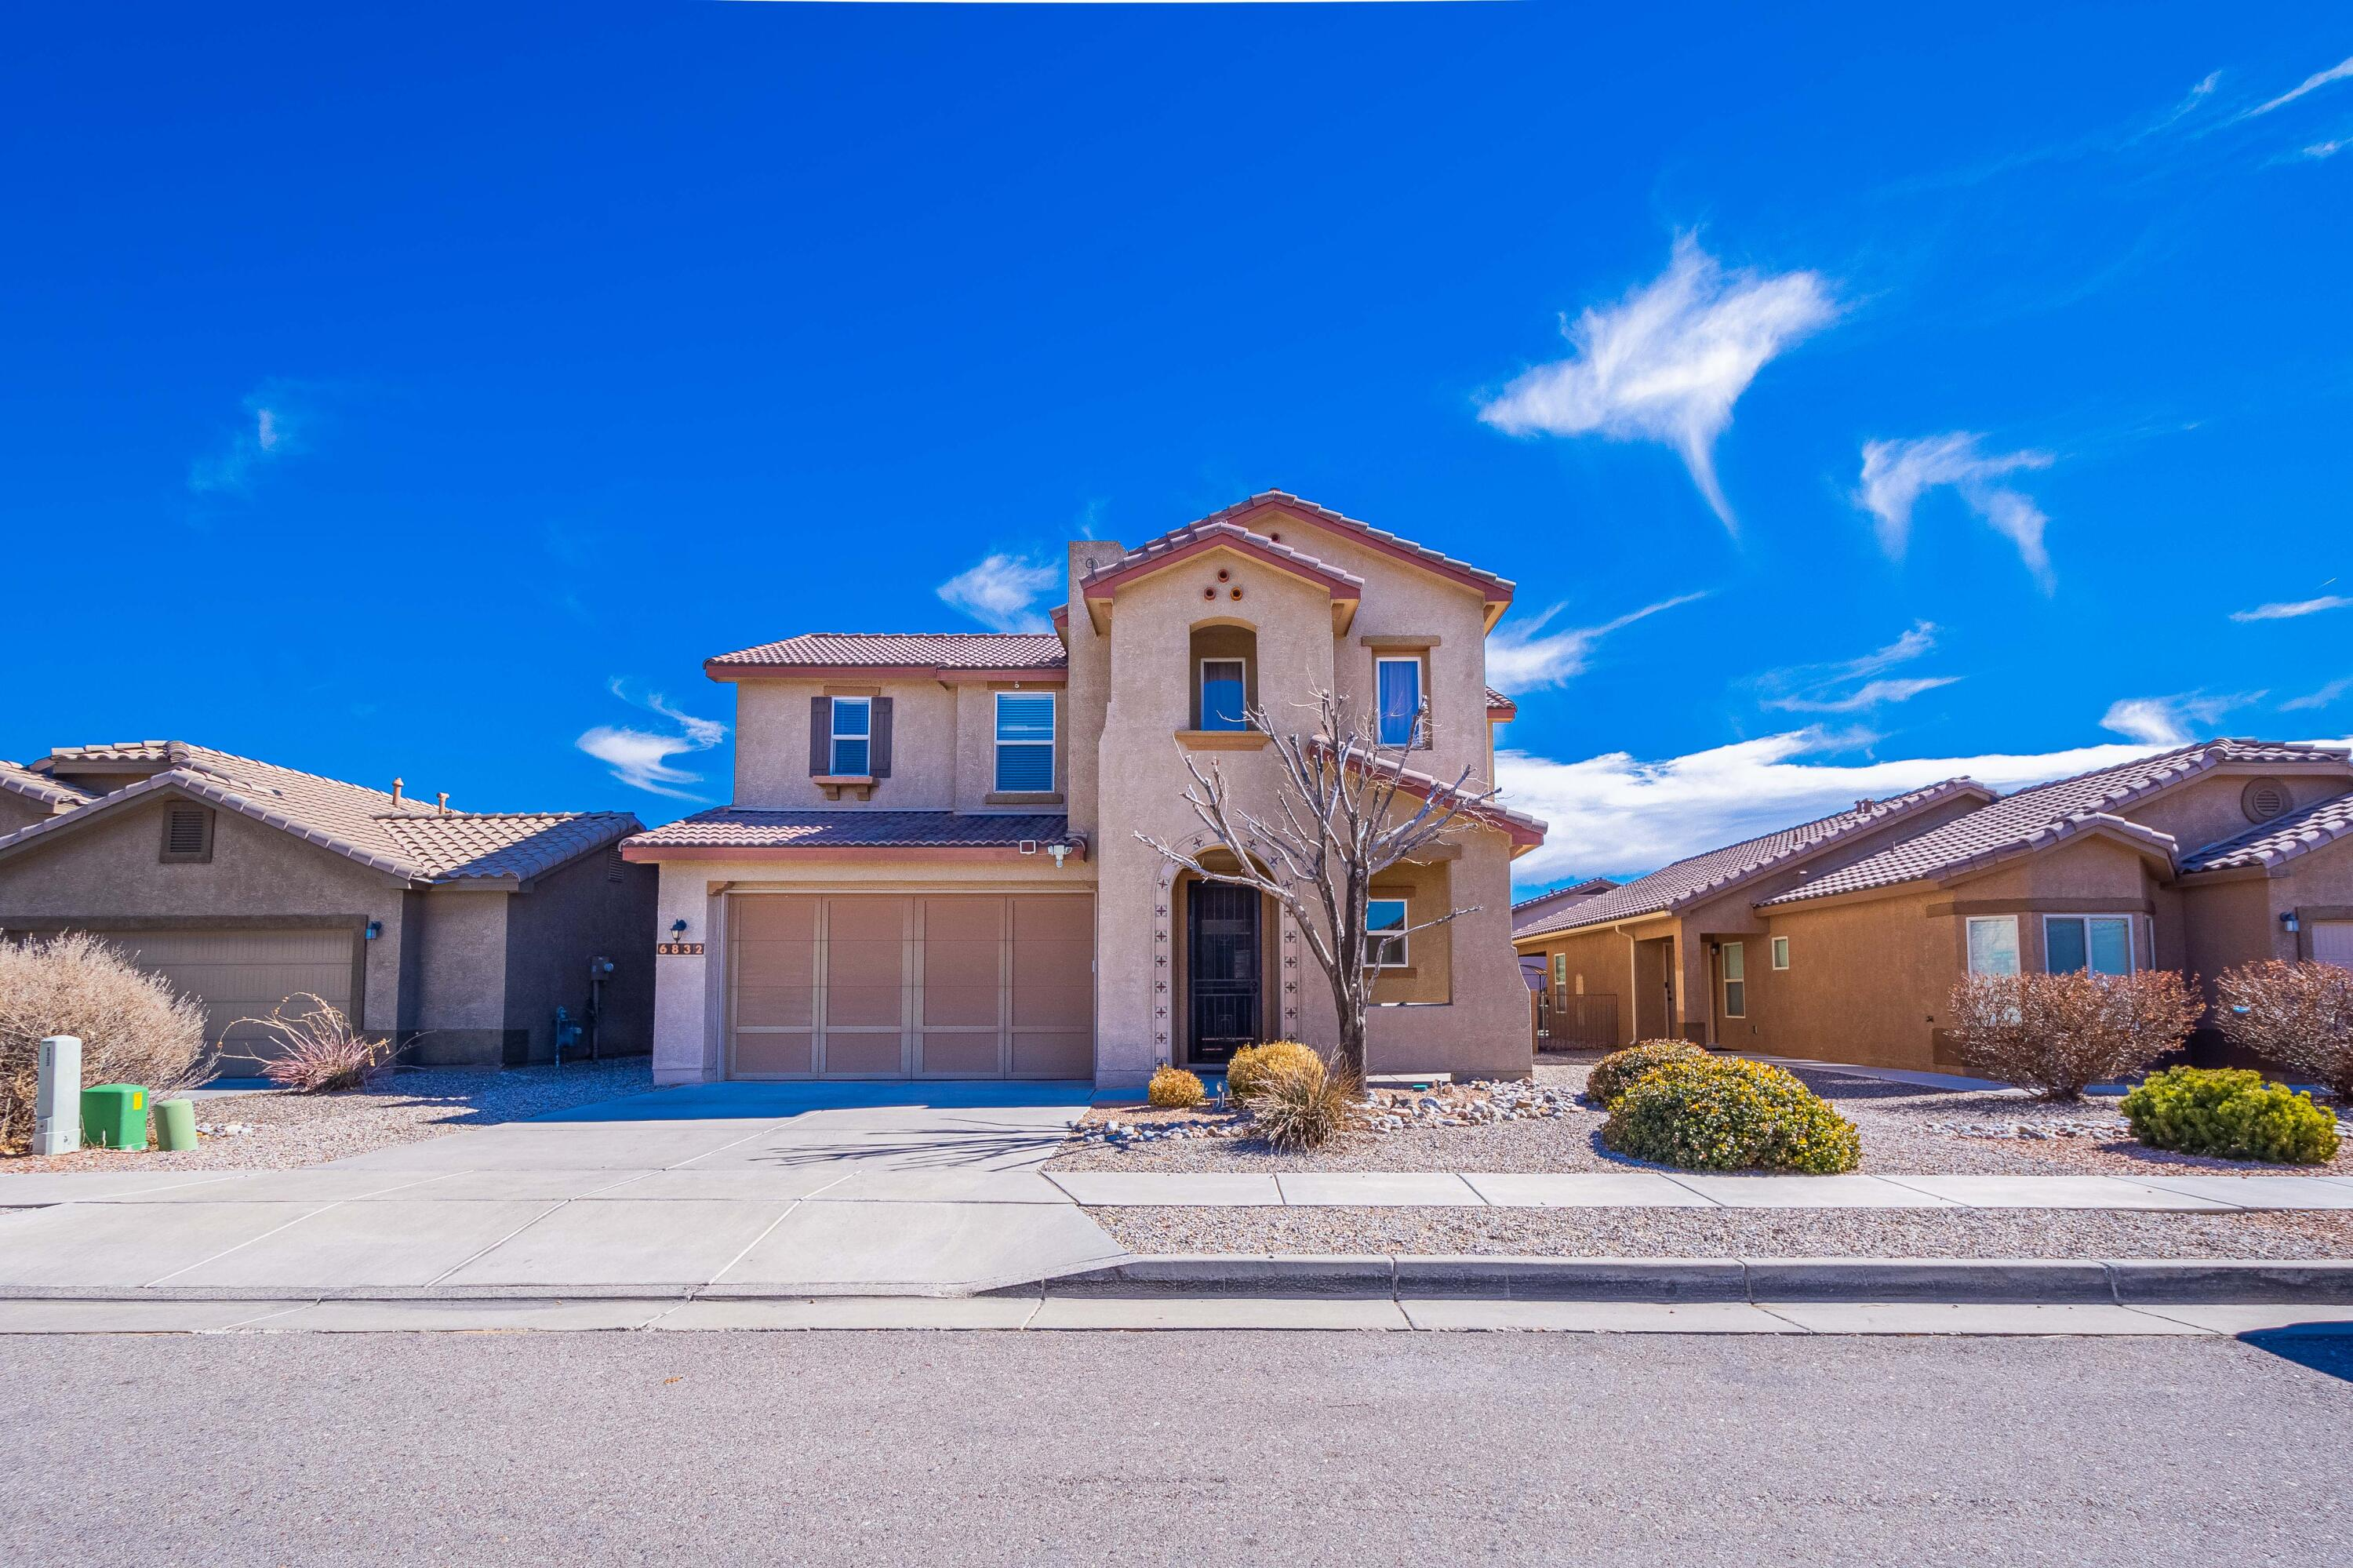 Check out this beautiful 4 bedroom home with walk in closets.  An office/study/workout room  . Upgraded kitchen with  huge granite Island and spacious open floor plan with lots of natural lighting throughout home. 2 living areas. Refrigerated Air (2 units). 3 car garage!  Great back yard and side yard! Community pool, clubhouse, parks and trails. So much to see!